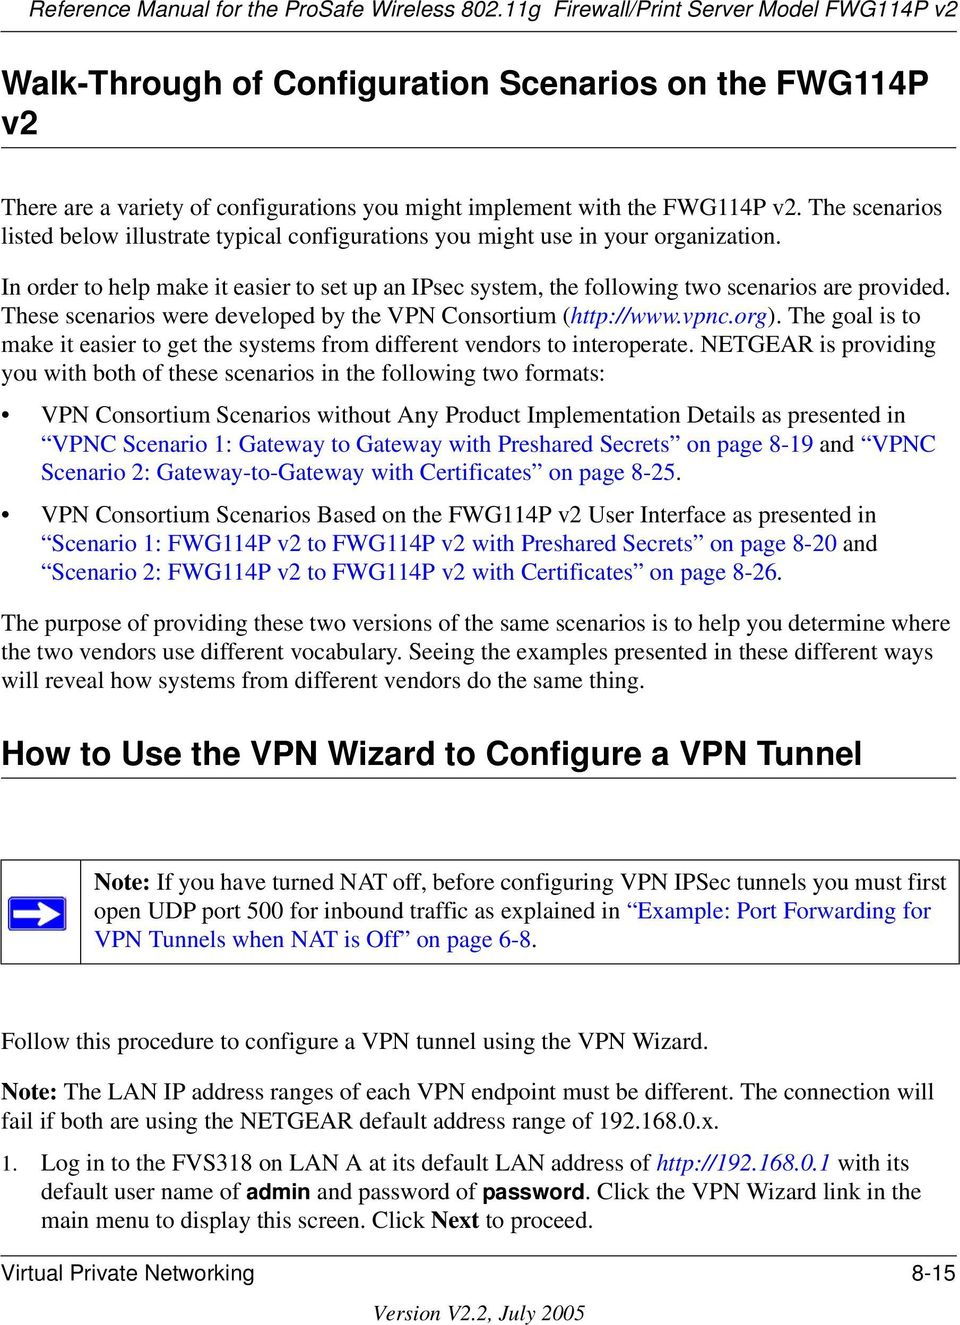 These scenarios were developed by the VPN Consortium (http://www.vpnc.org). The goal is to make it easier to get the systems from different vendors to interoperate.